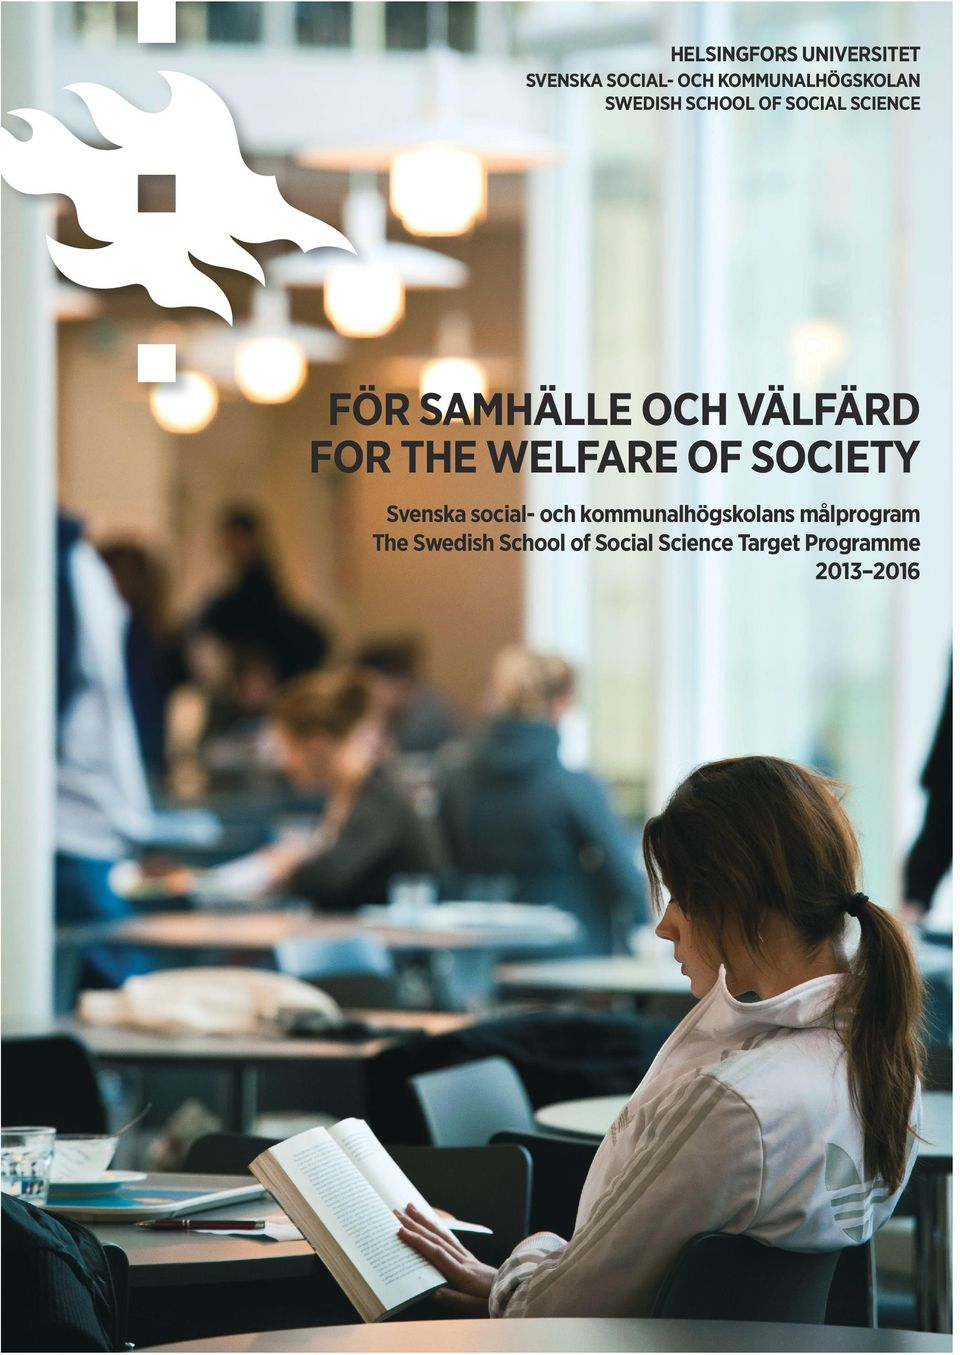 THE WELFARE OF SOCIETY Svenska social- och kommunalhögskolans